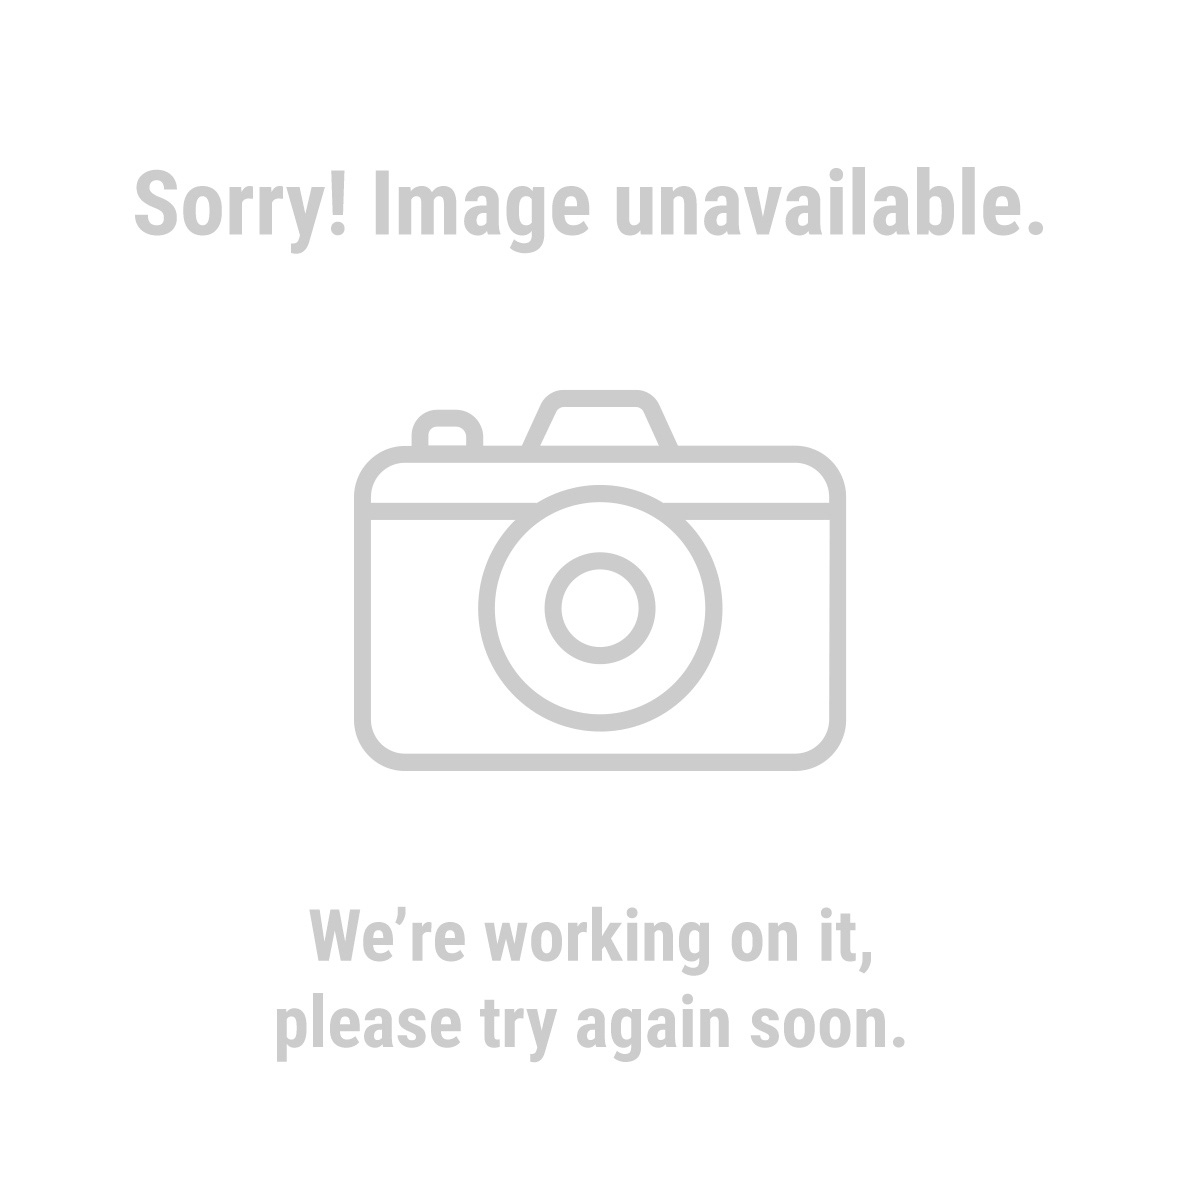 Chicago Electric Power Tools 69077 Orbital Jigsaw with Dust Blower and Laser Cutting Guide